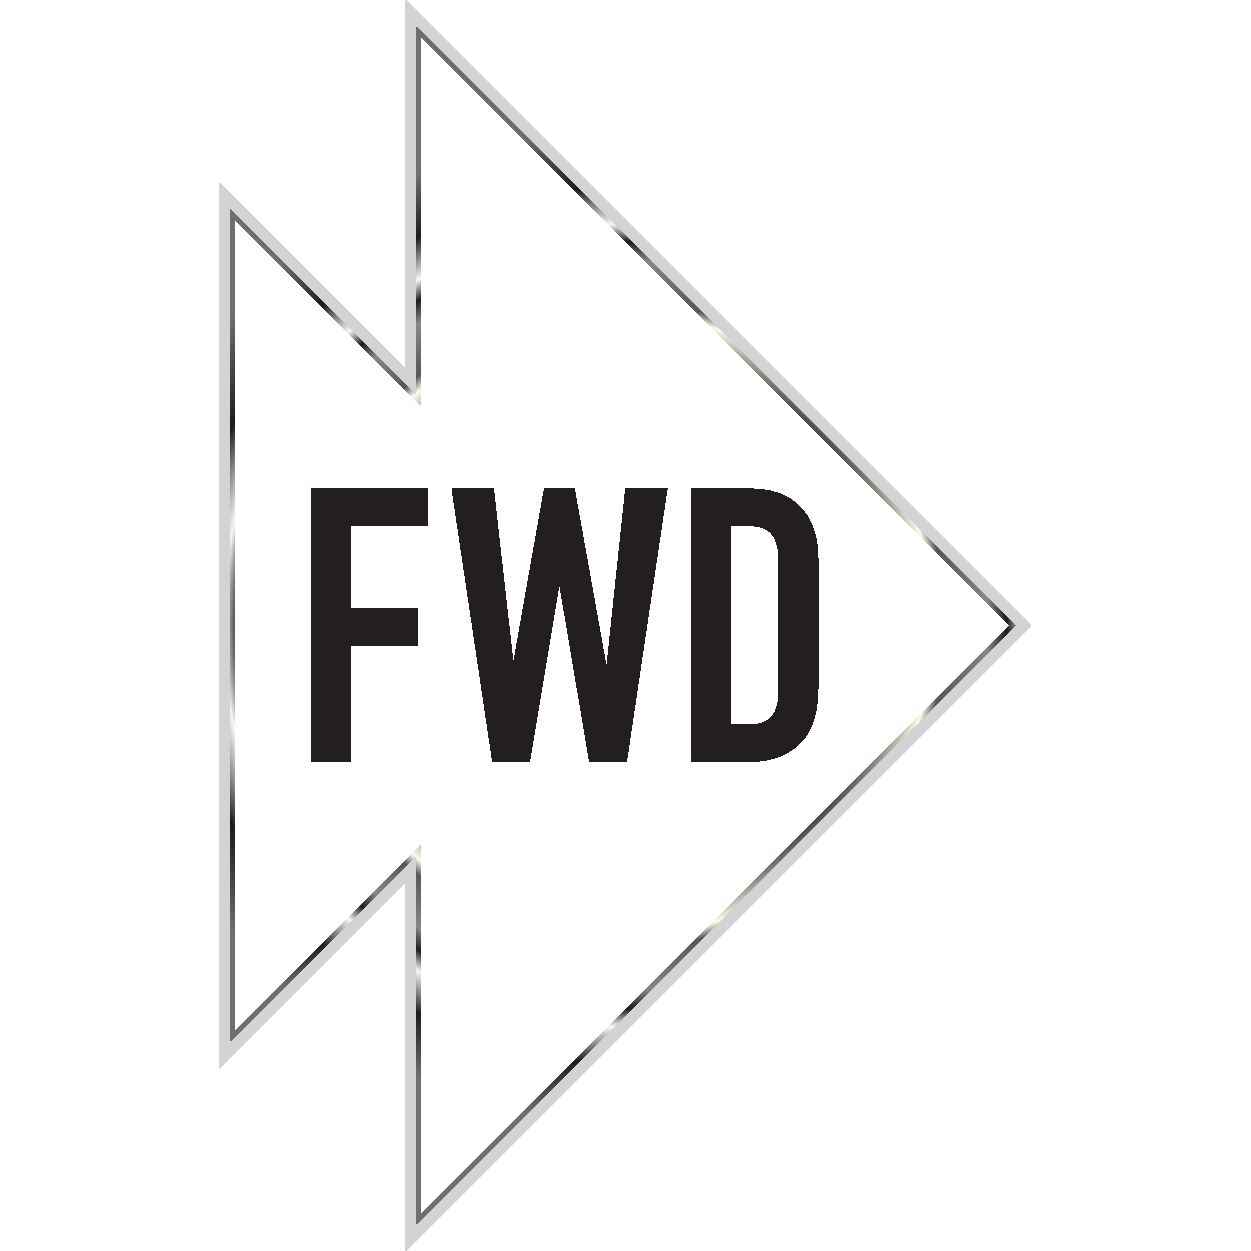 FWD LOGO-01.png